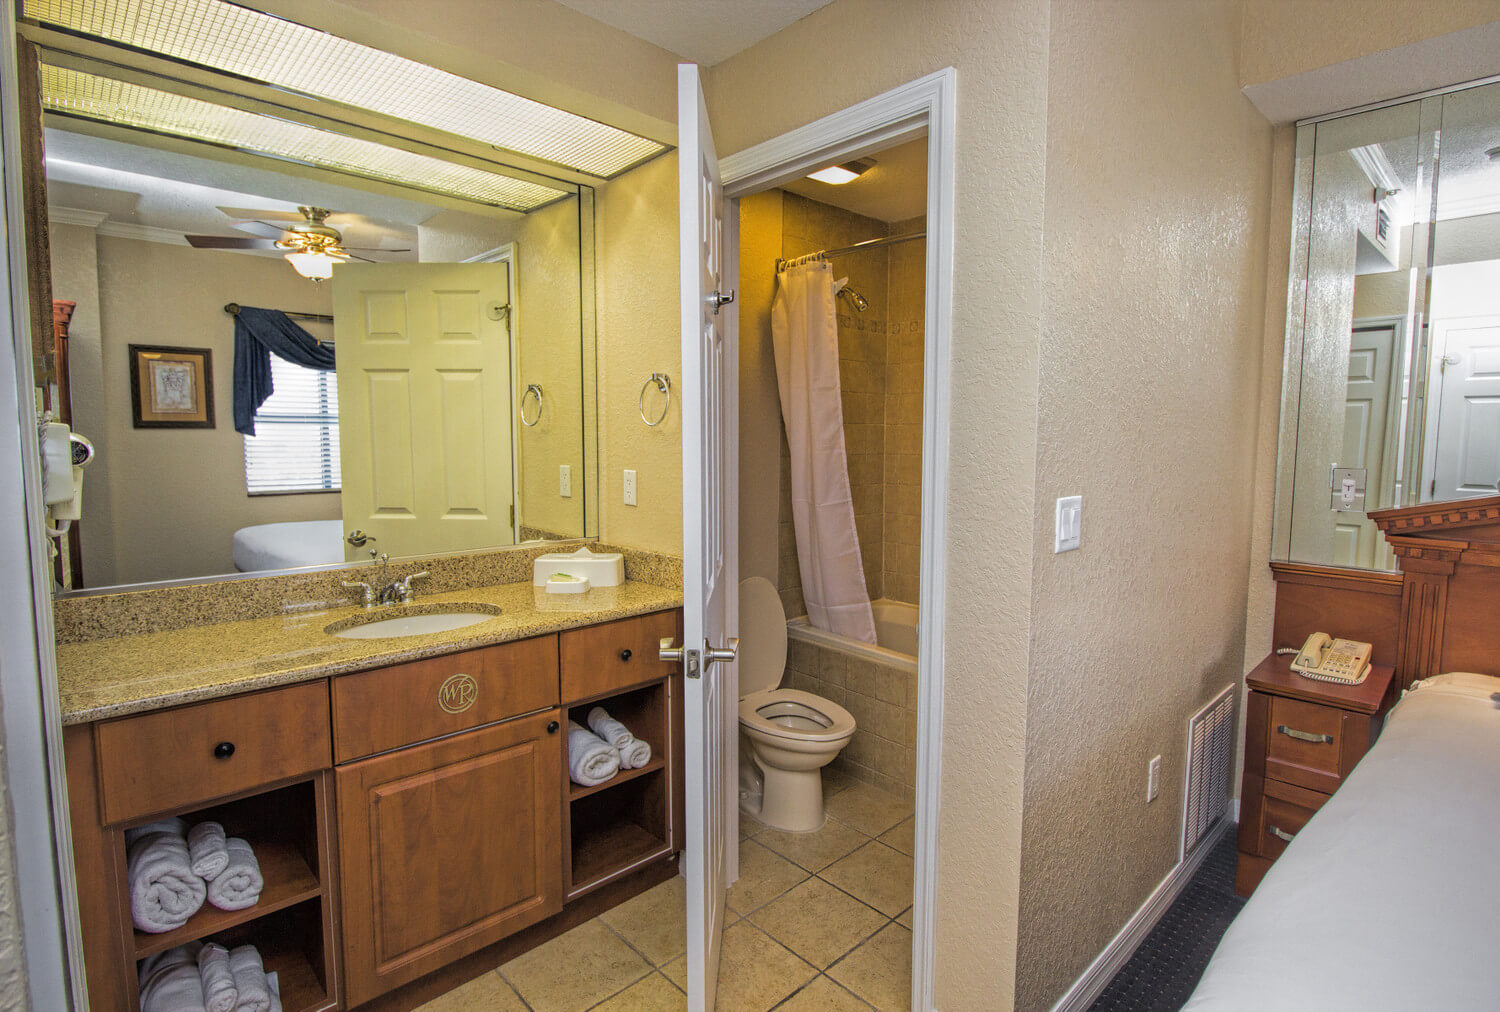 Orlando Hotel 2 Bedroom Suites Two Bedroom Villa Hotels By Universal Studios